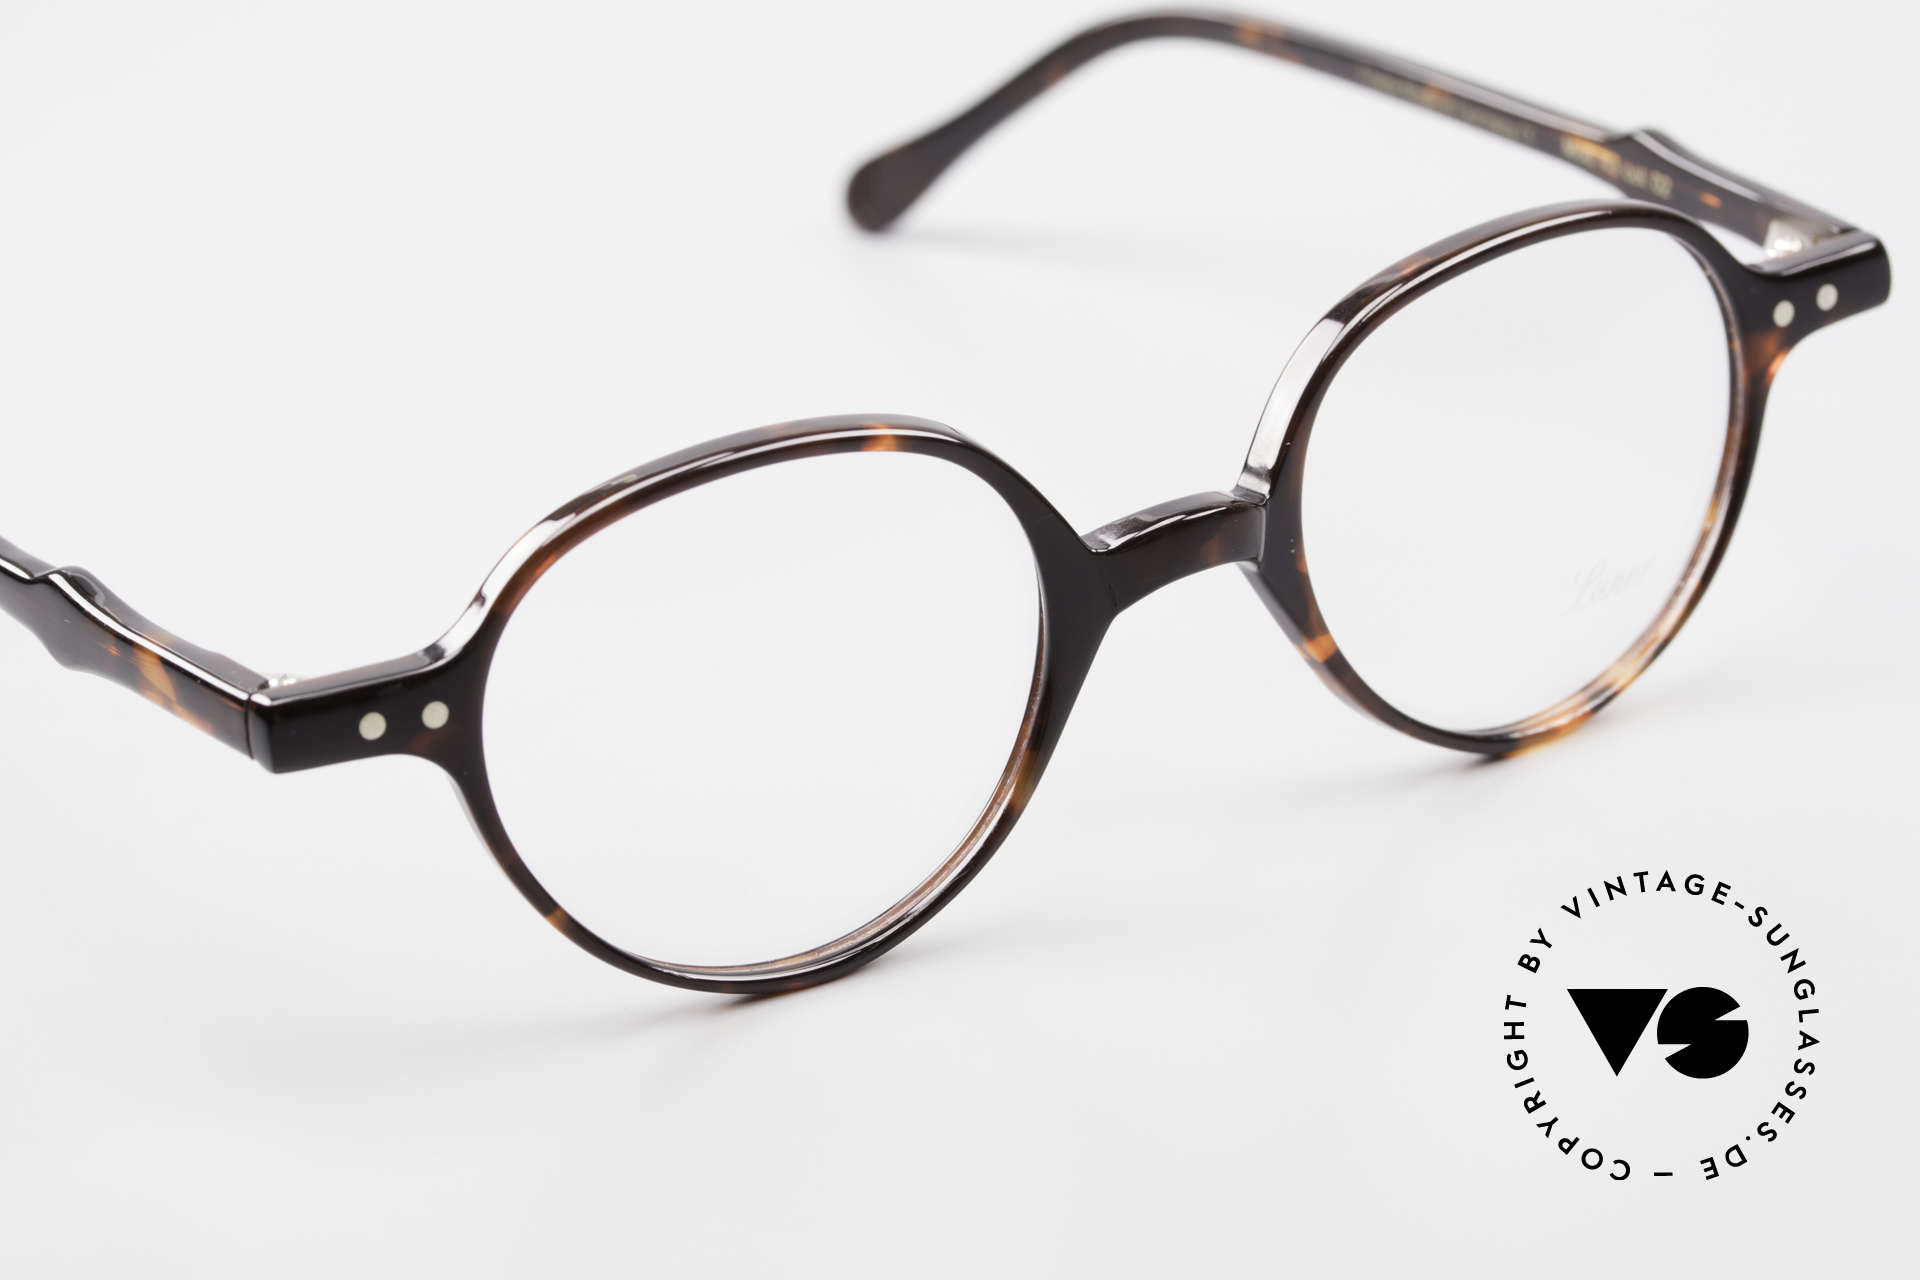 Lunor A43 Panto Acetate Eyeglass-Frame, unworn (like all our vintage Lunor frames & sunglasses), Made for Men and Women